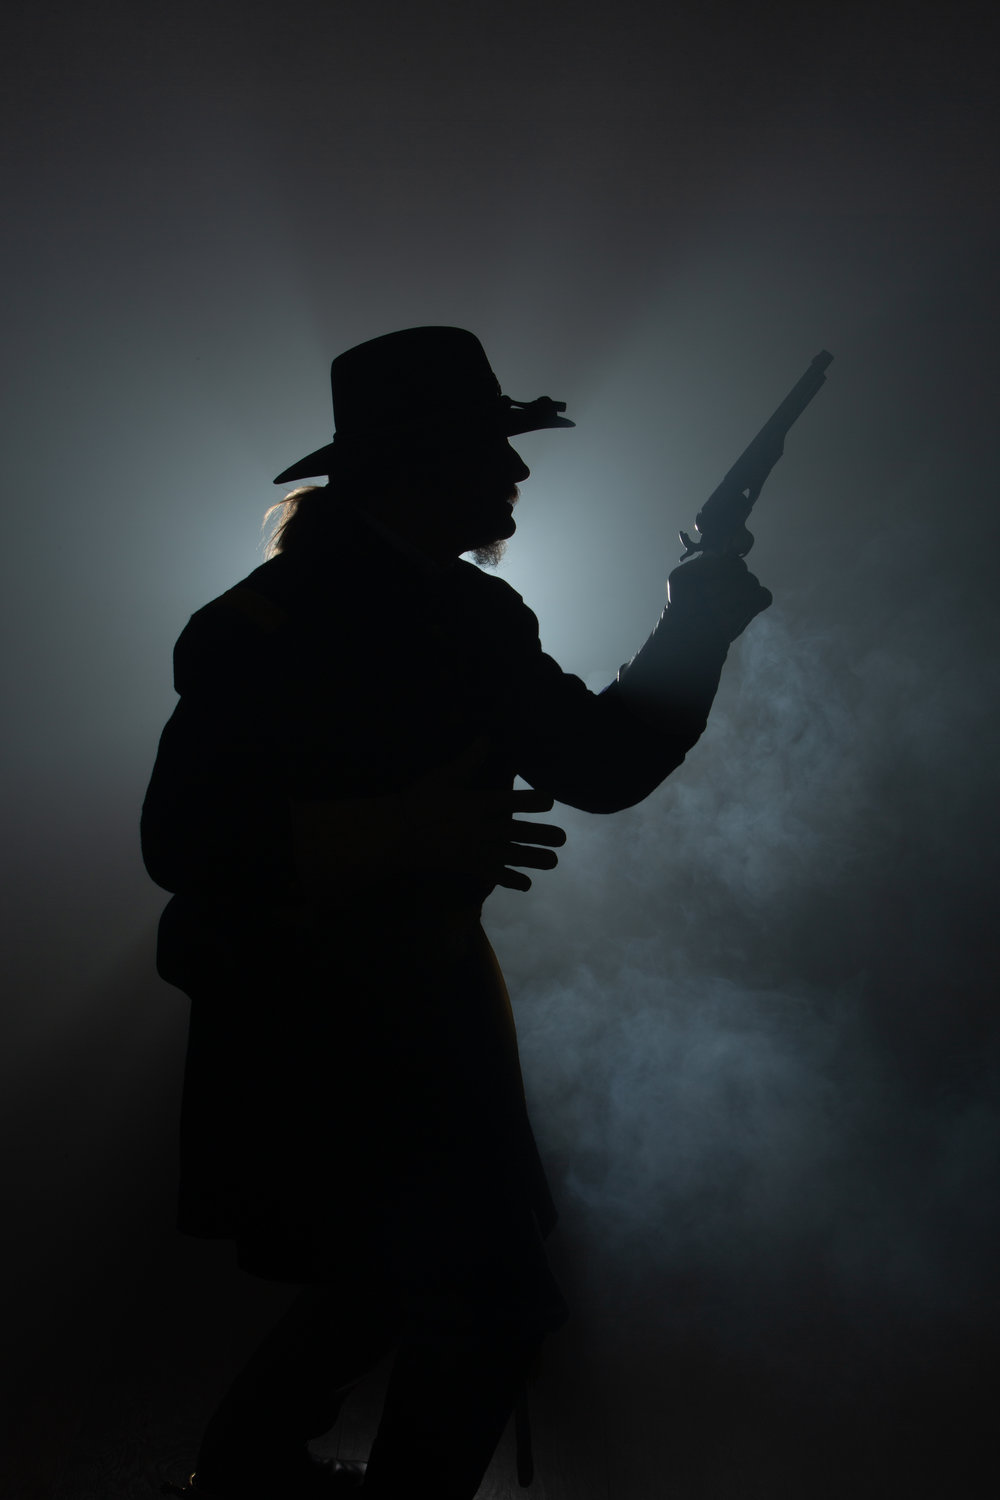 - Here, while dressed in his Civil War uniform, we played around with using the fog machine. While it didn't turn out to be a spectacular image, we did gain some more insight into what we could and couldn't accomplish with the fog.